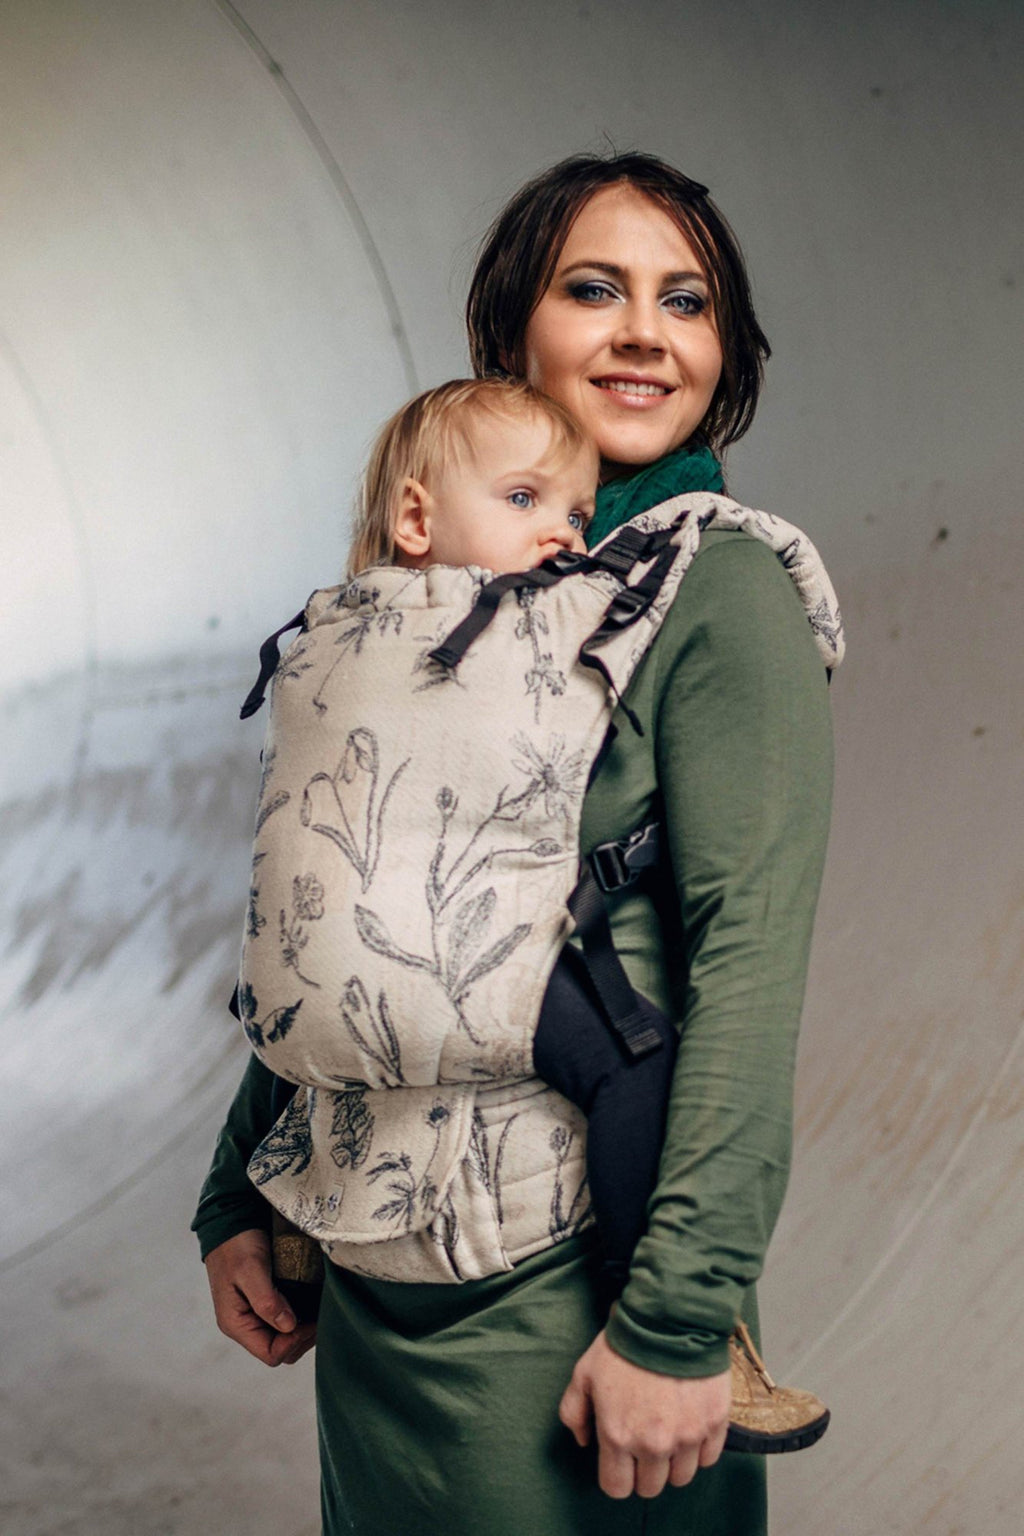 LennyUp Infant Buckle Carrier - Herbarium